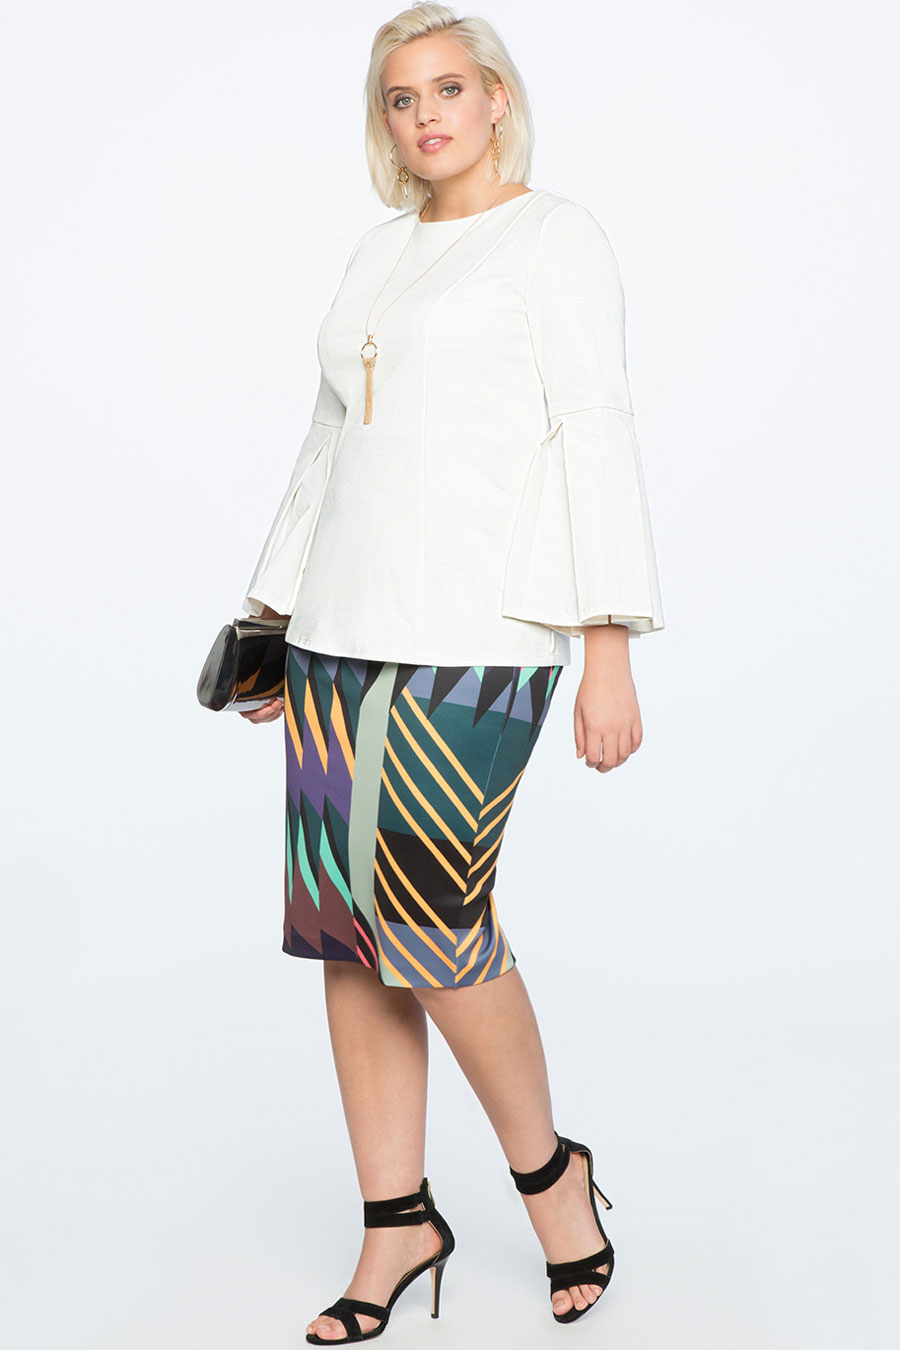 Eloquii Neoprene Pencil Skirt